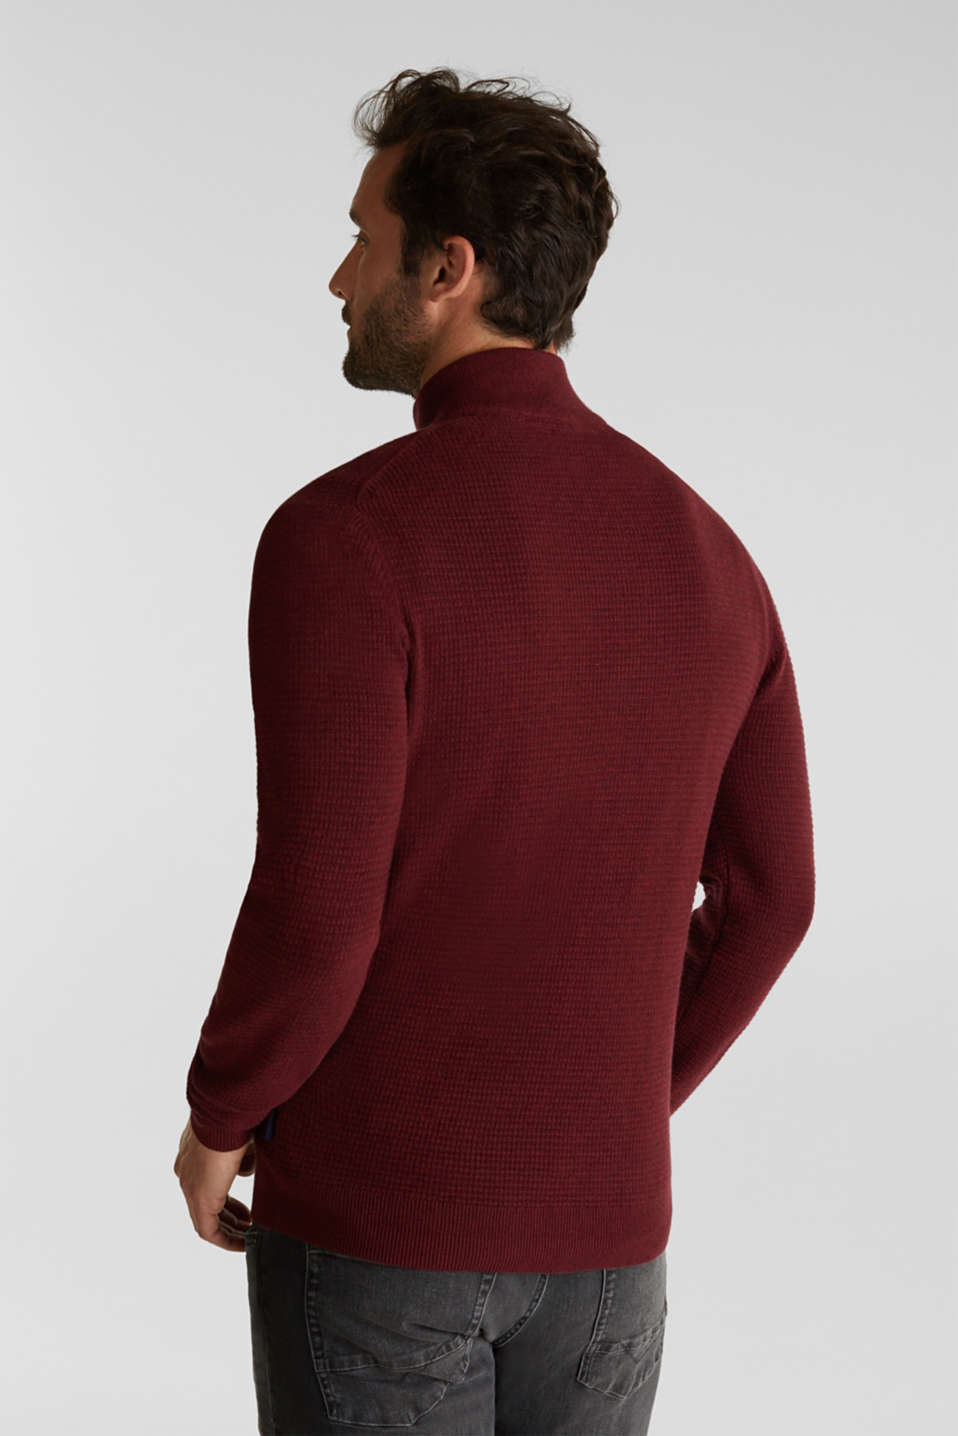 With cashmere: Textured knit jumper, DARK RED, detail image number 3